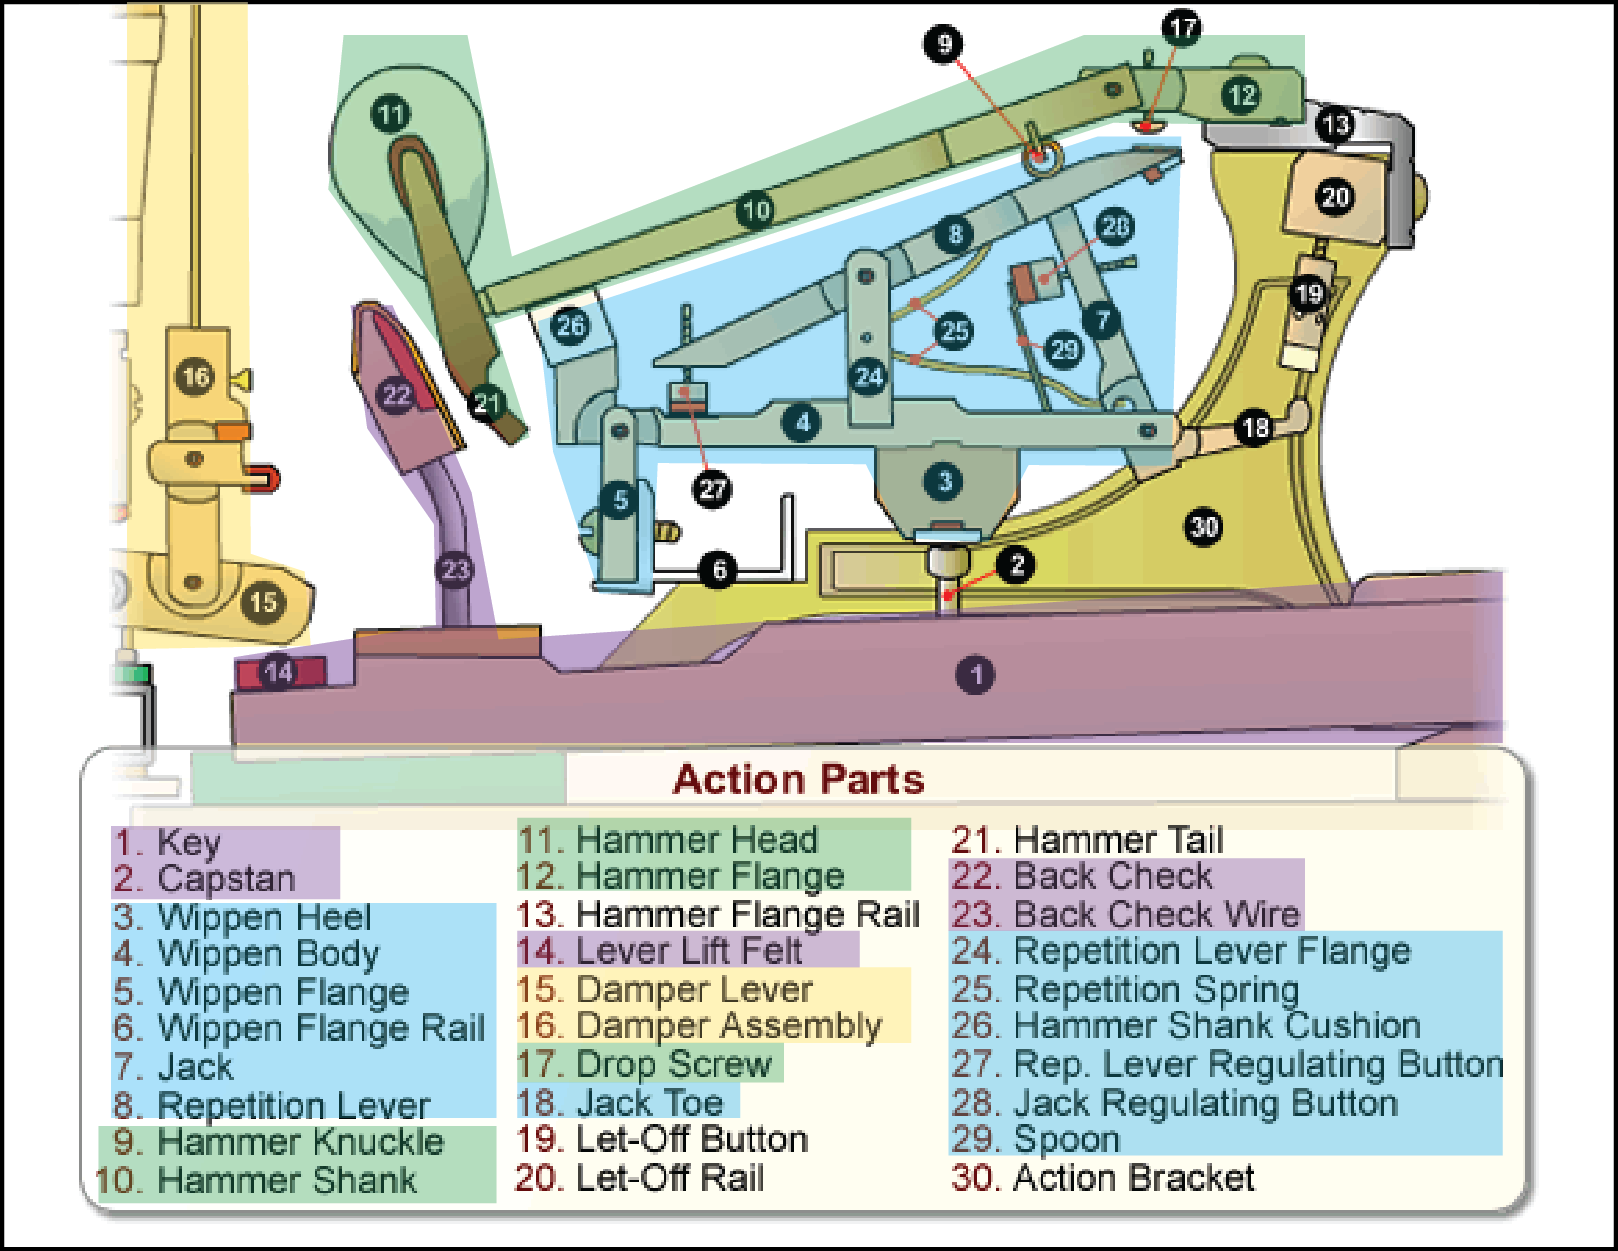 http://www.piano.christophersmit.com/actionDetail.htm (highlighted grouping mine)